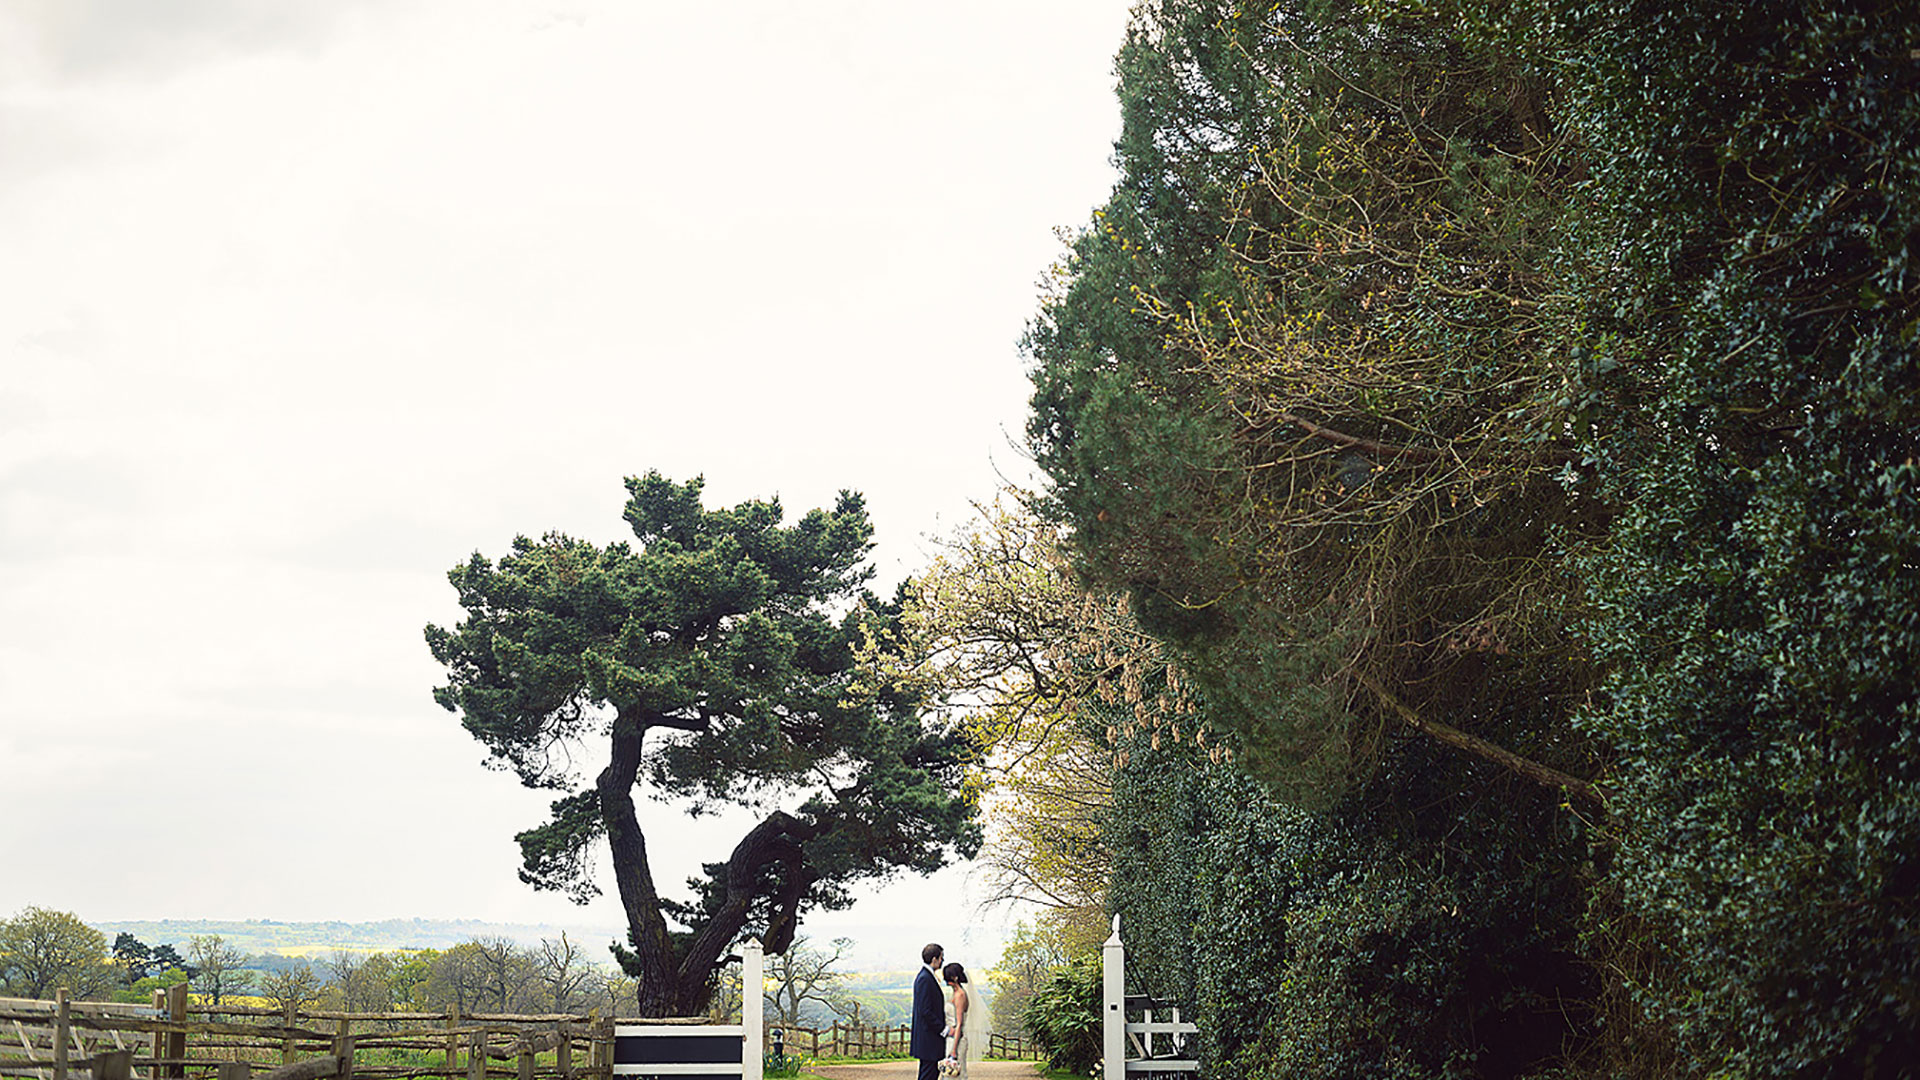 A happy couple share a moment alone at this beautiful countryside wedding venue - wedding barns Essex